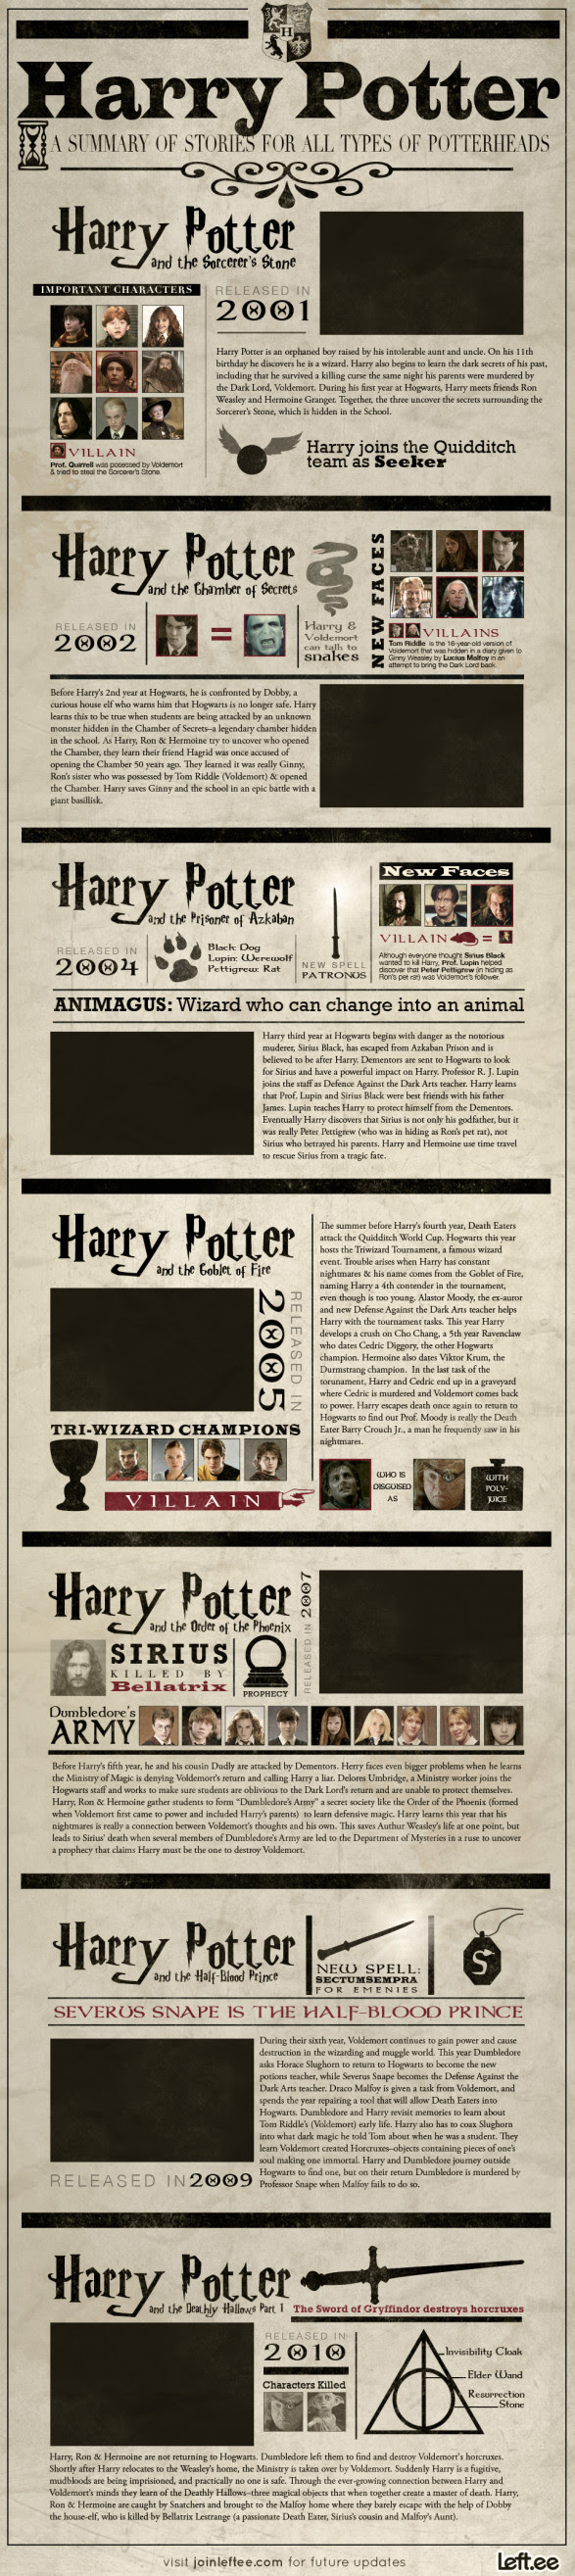 A Visual Summary of Harry Potter